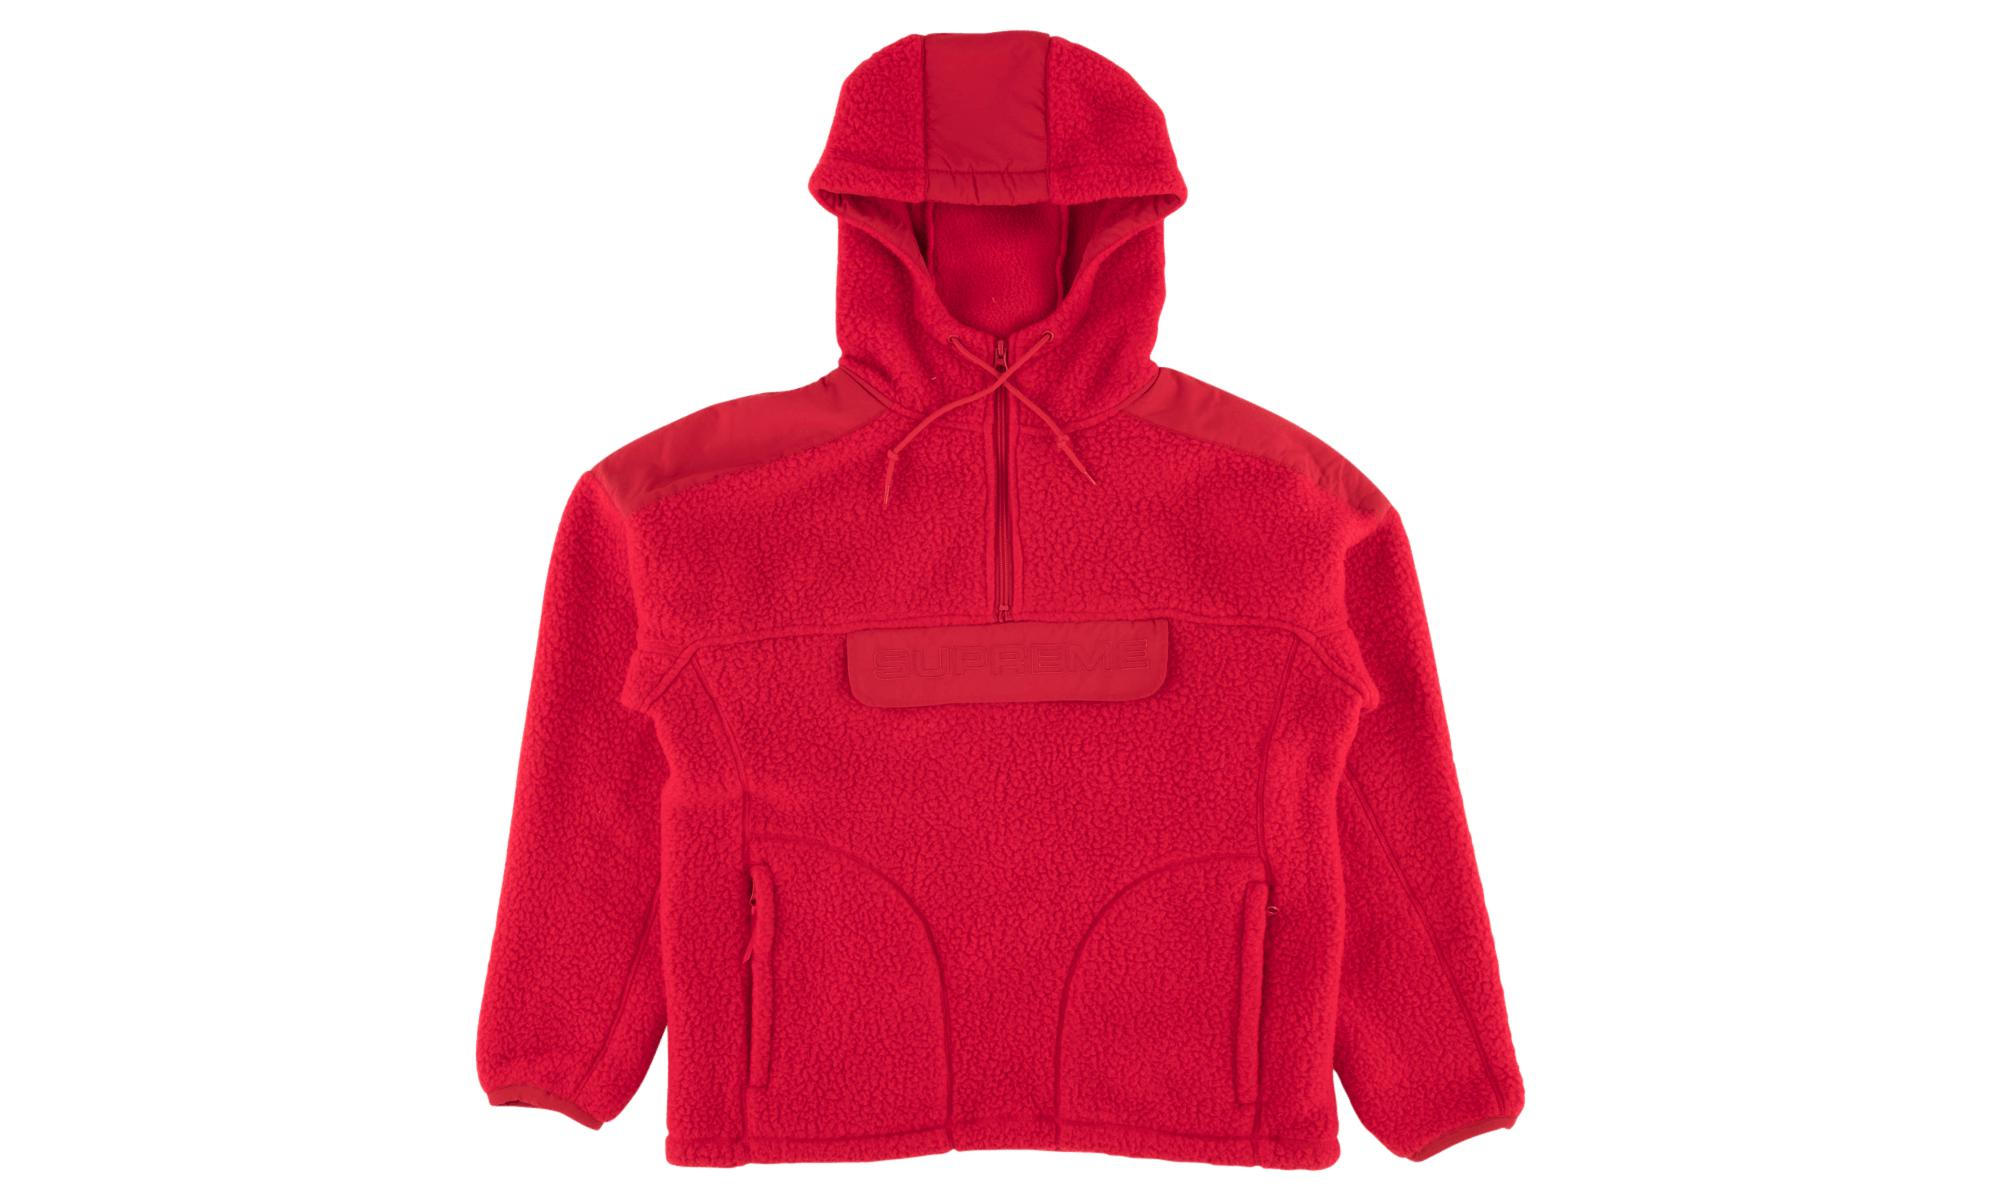 d15ce62c Supreme Polartec Hooded Half Zip Pullo in Red for Men - Lyst